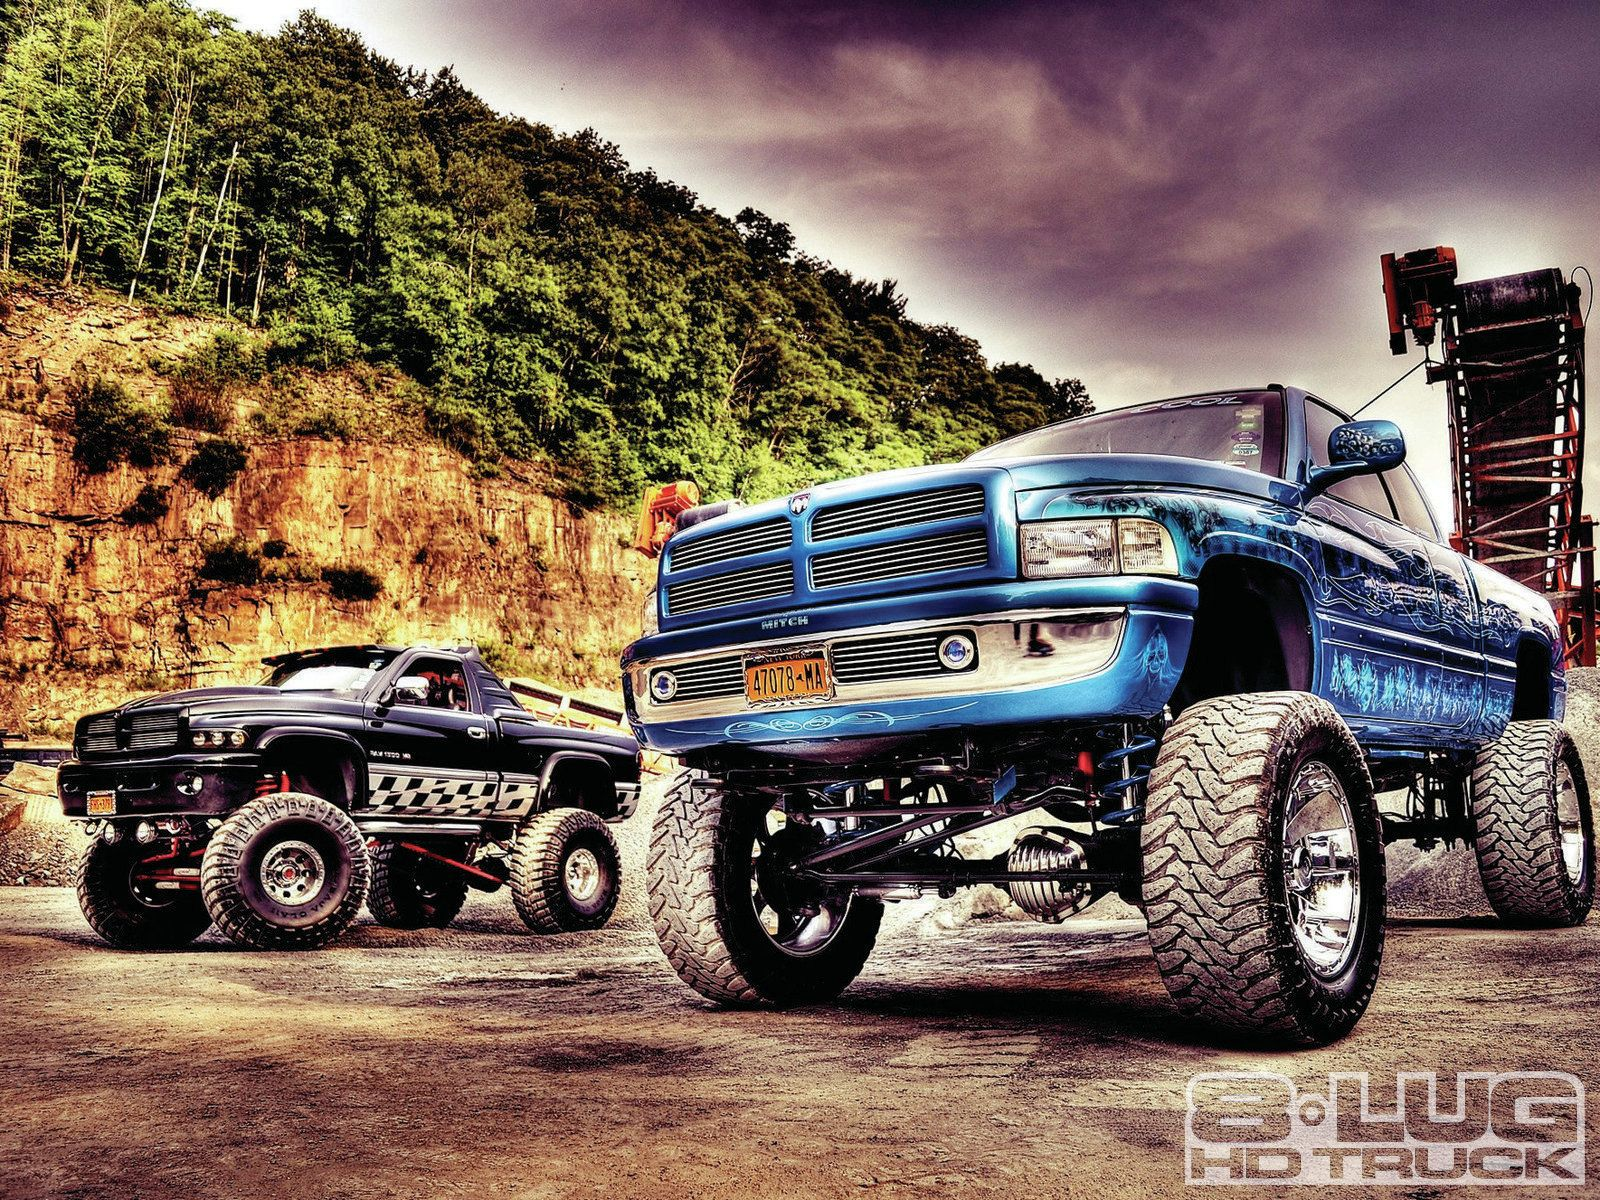 Check their 1997 dodge ram 1999 dodge ram and 2002 dodge ram 2500 cummins here in the august 2012 edition of magazine